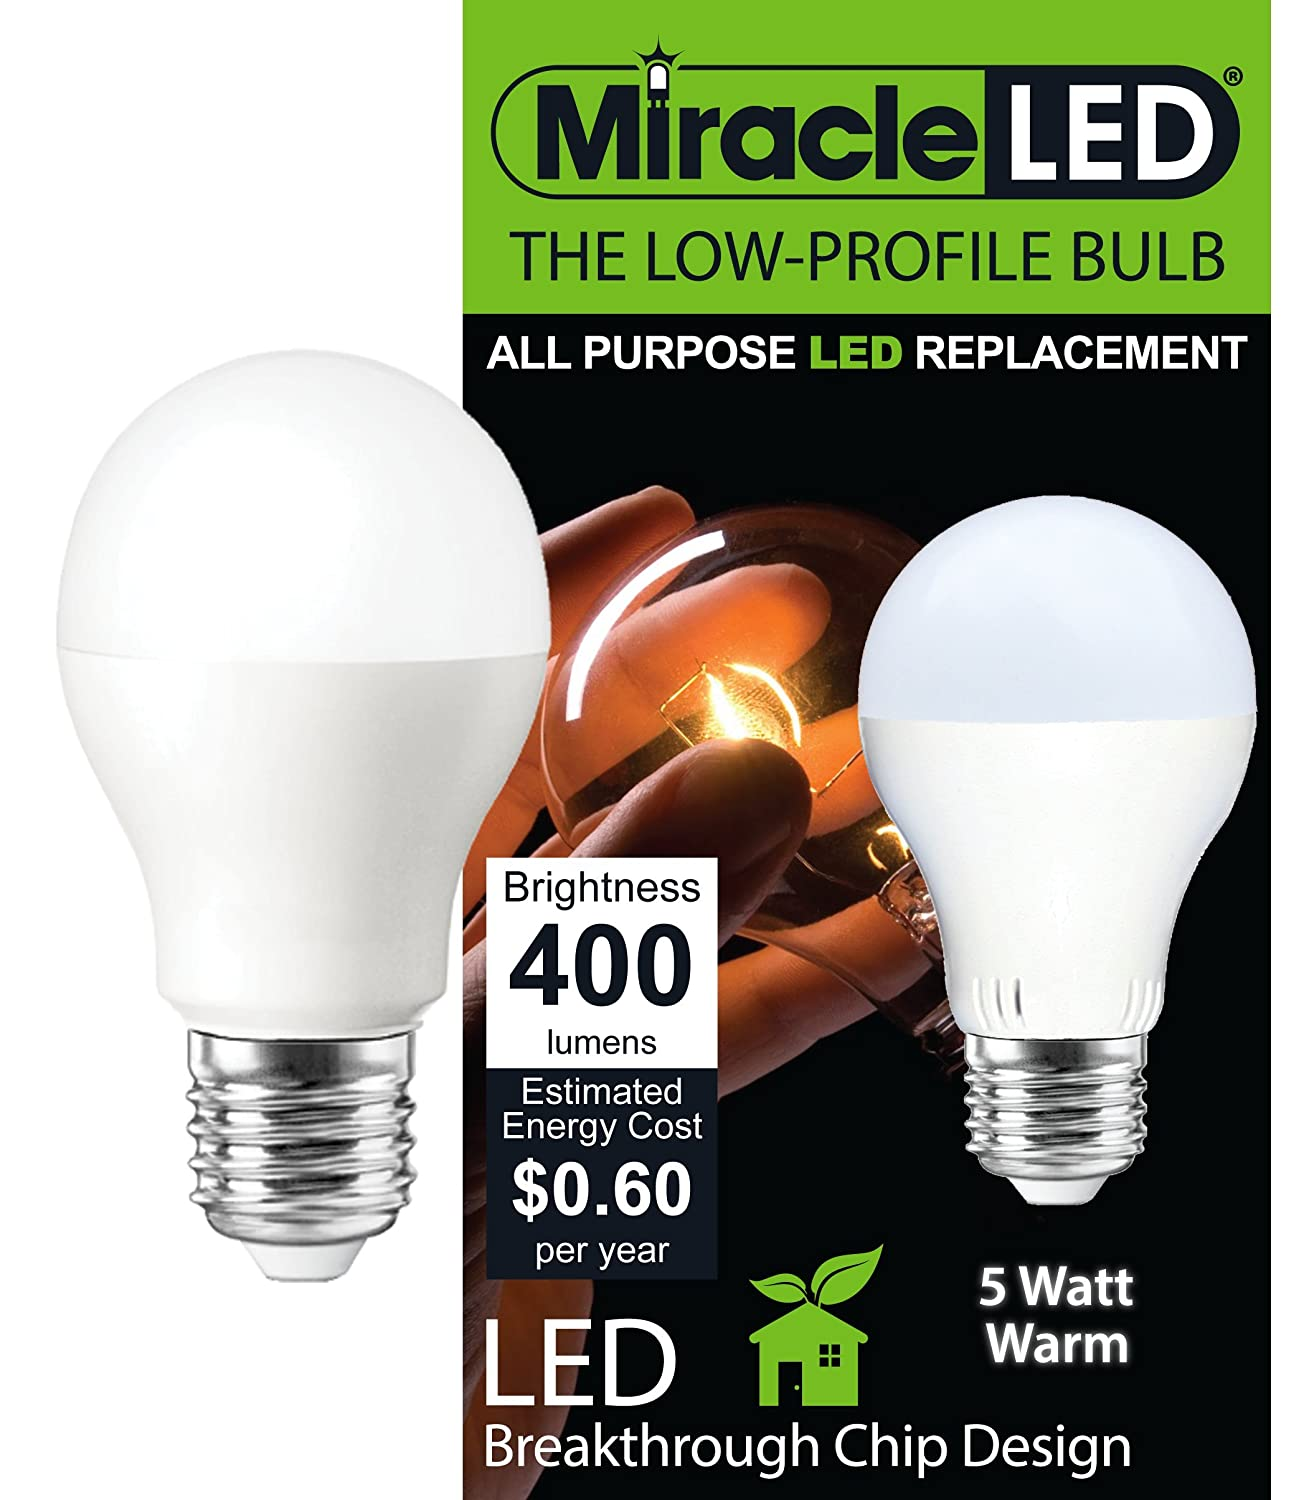 Miracle LED 605007 General Purpose Bulb Low Profile 400 Lumen Medium Base Soft White - Appliance Led - Amazon.com  sc 1 st  Amazon.com & Miracle LED 605007 General Purpose Bulb Low Profile 400 Lumen ... azcodes.com